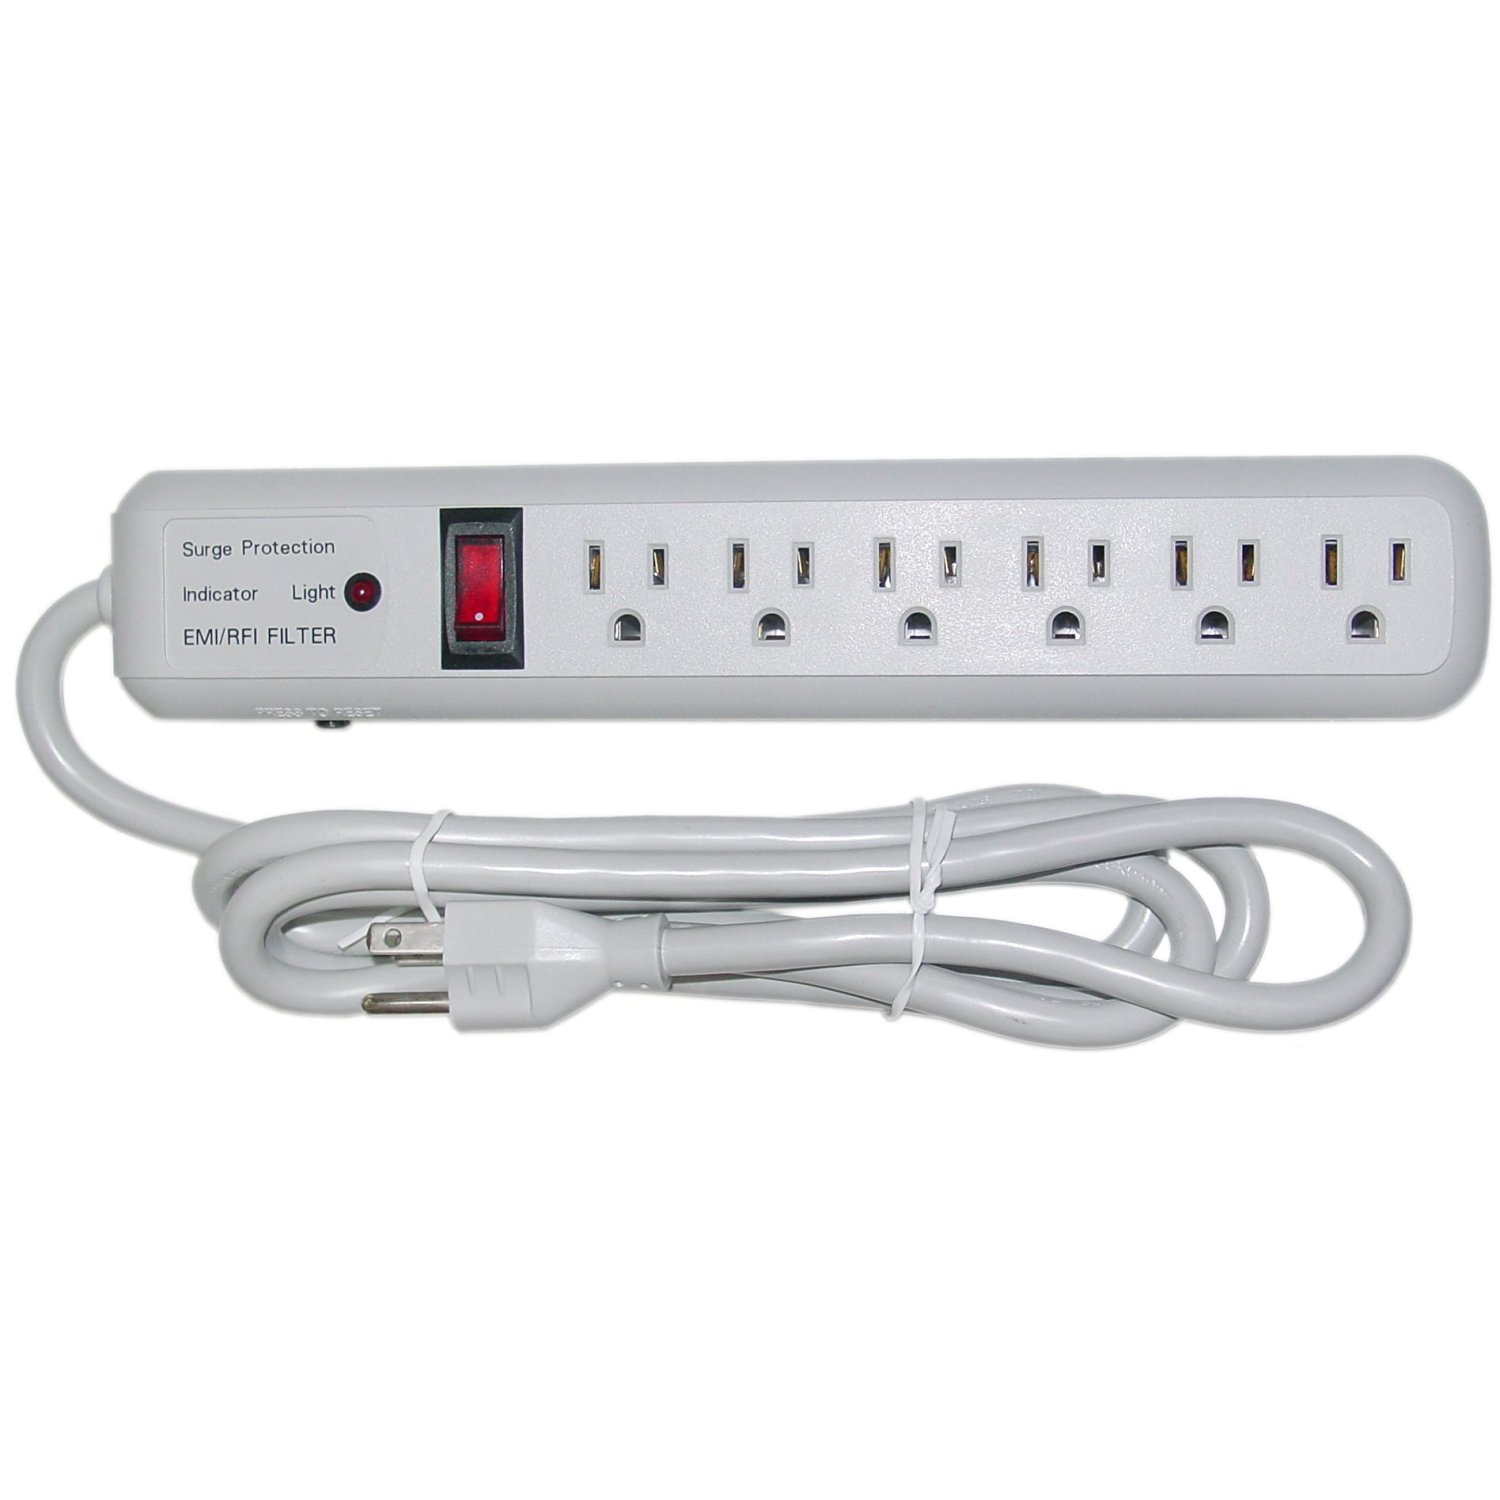 GadKo Surge Protector, 6 Outlet, Gray, Vertical Outlets, 3 MOV, 540 Joules, EMI / RFI, Power Cord 6 foot